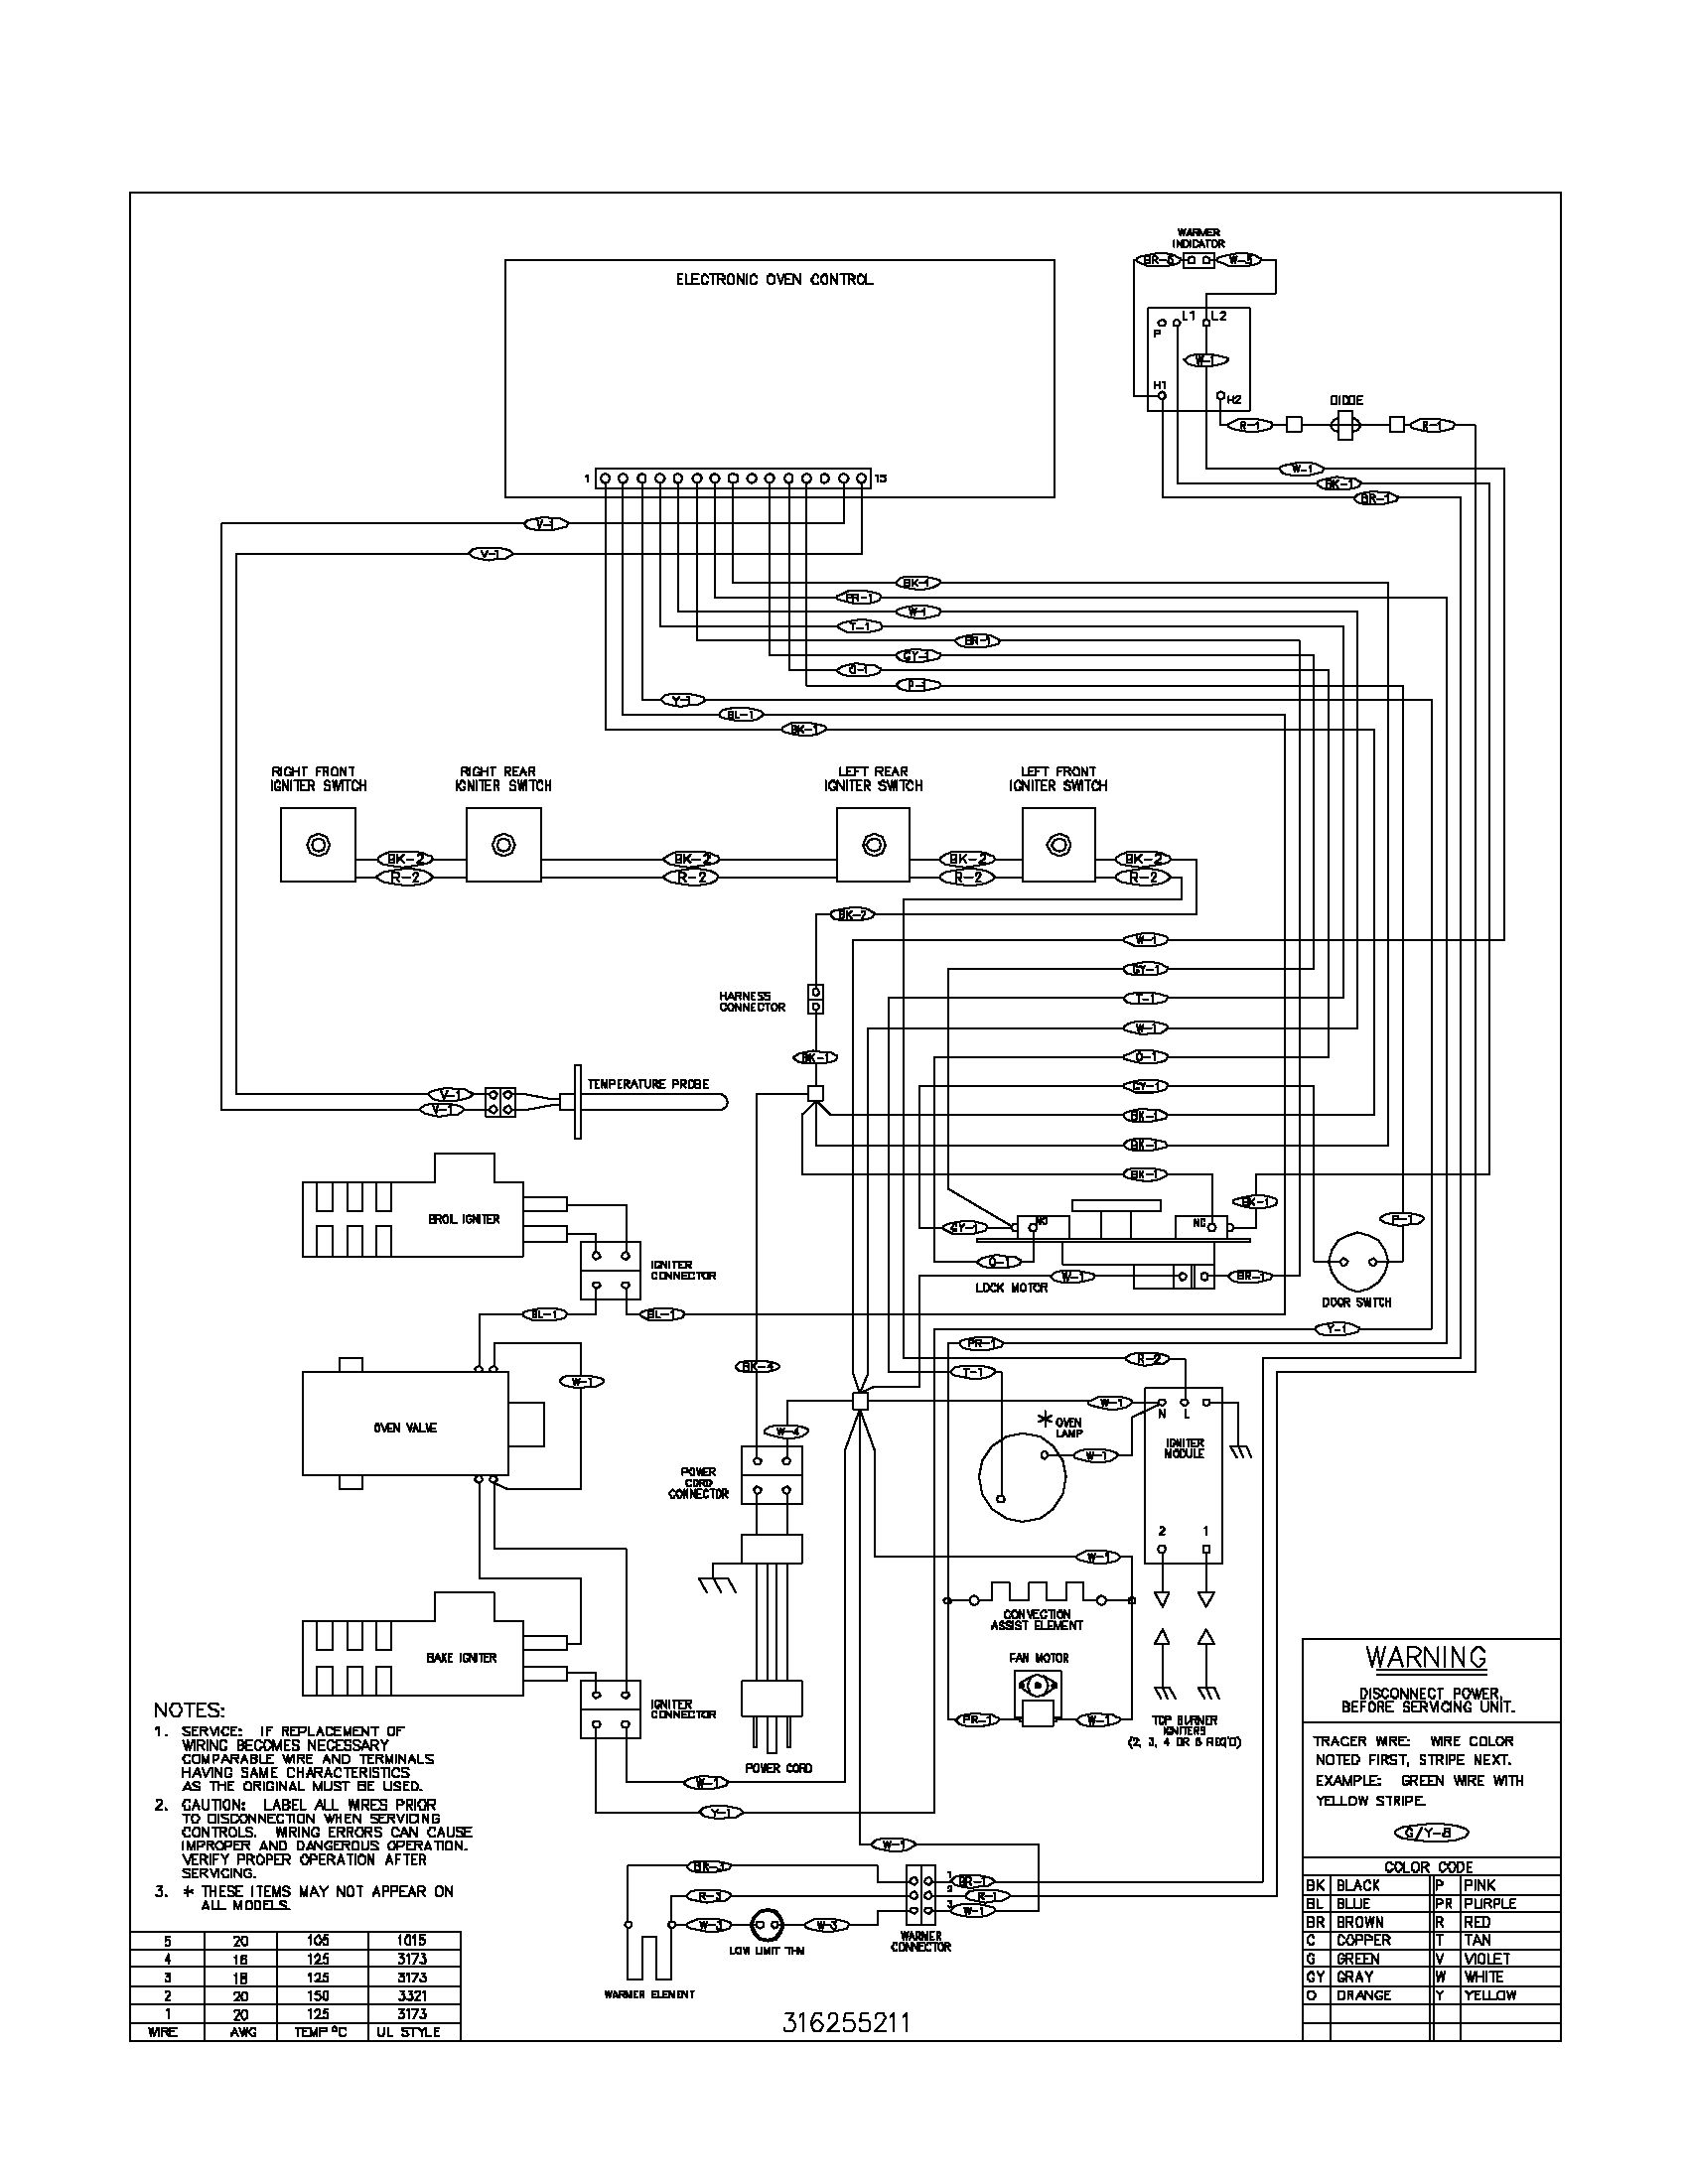 schematic of a gas range  schematic  free engine image for